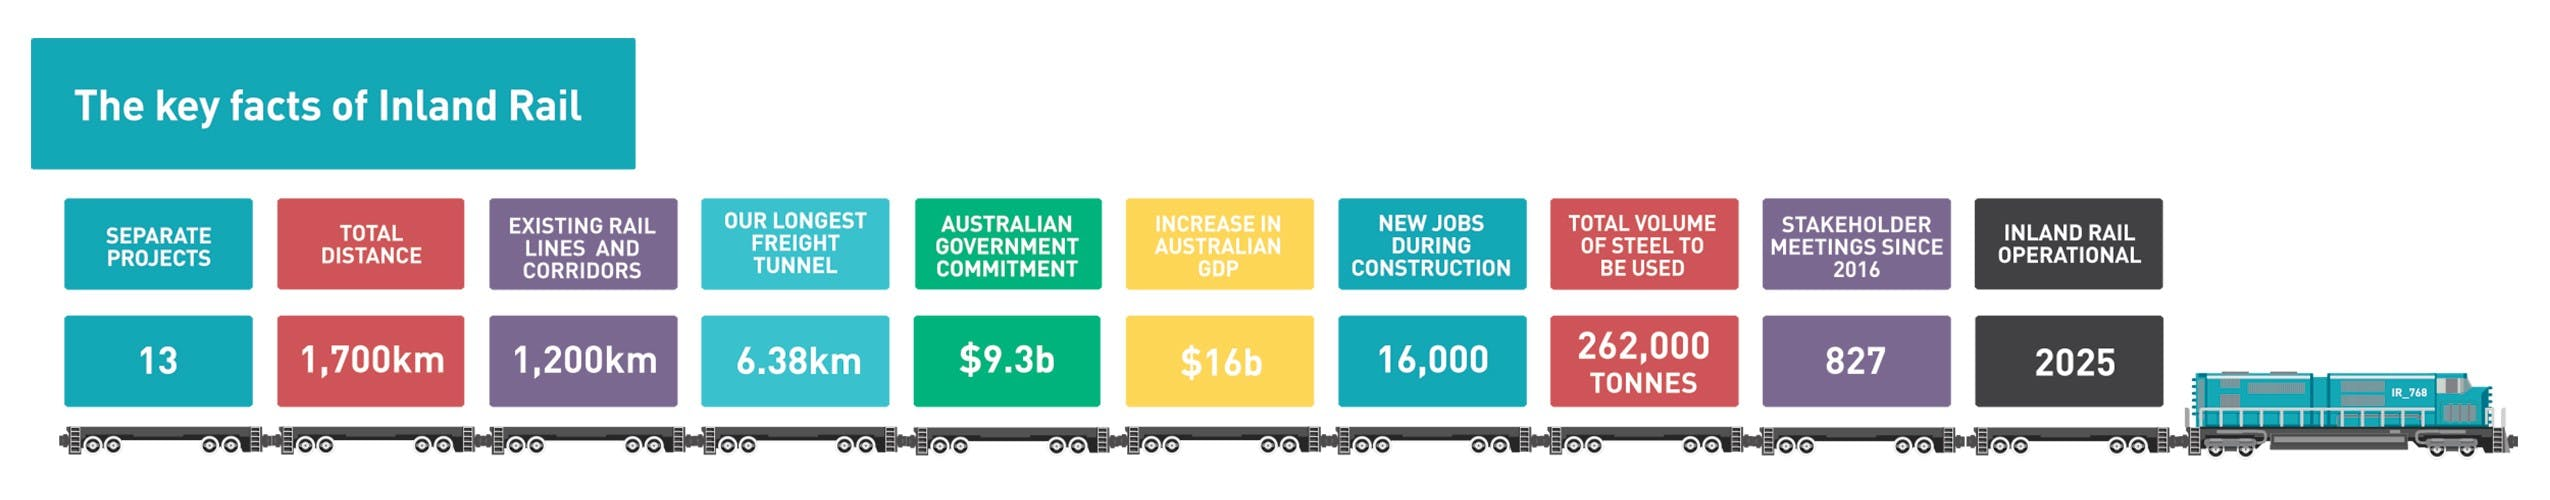 The key facts of Inland Rail